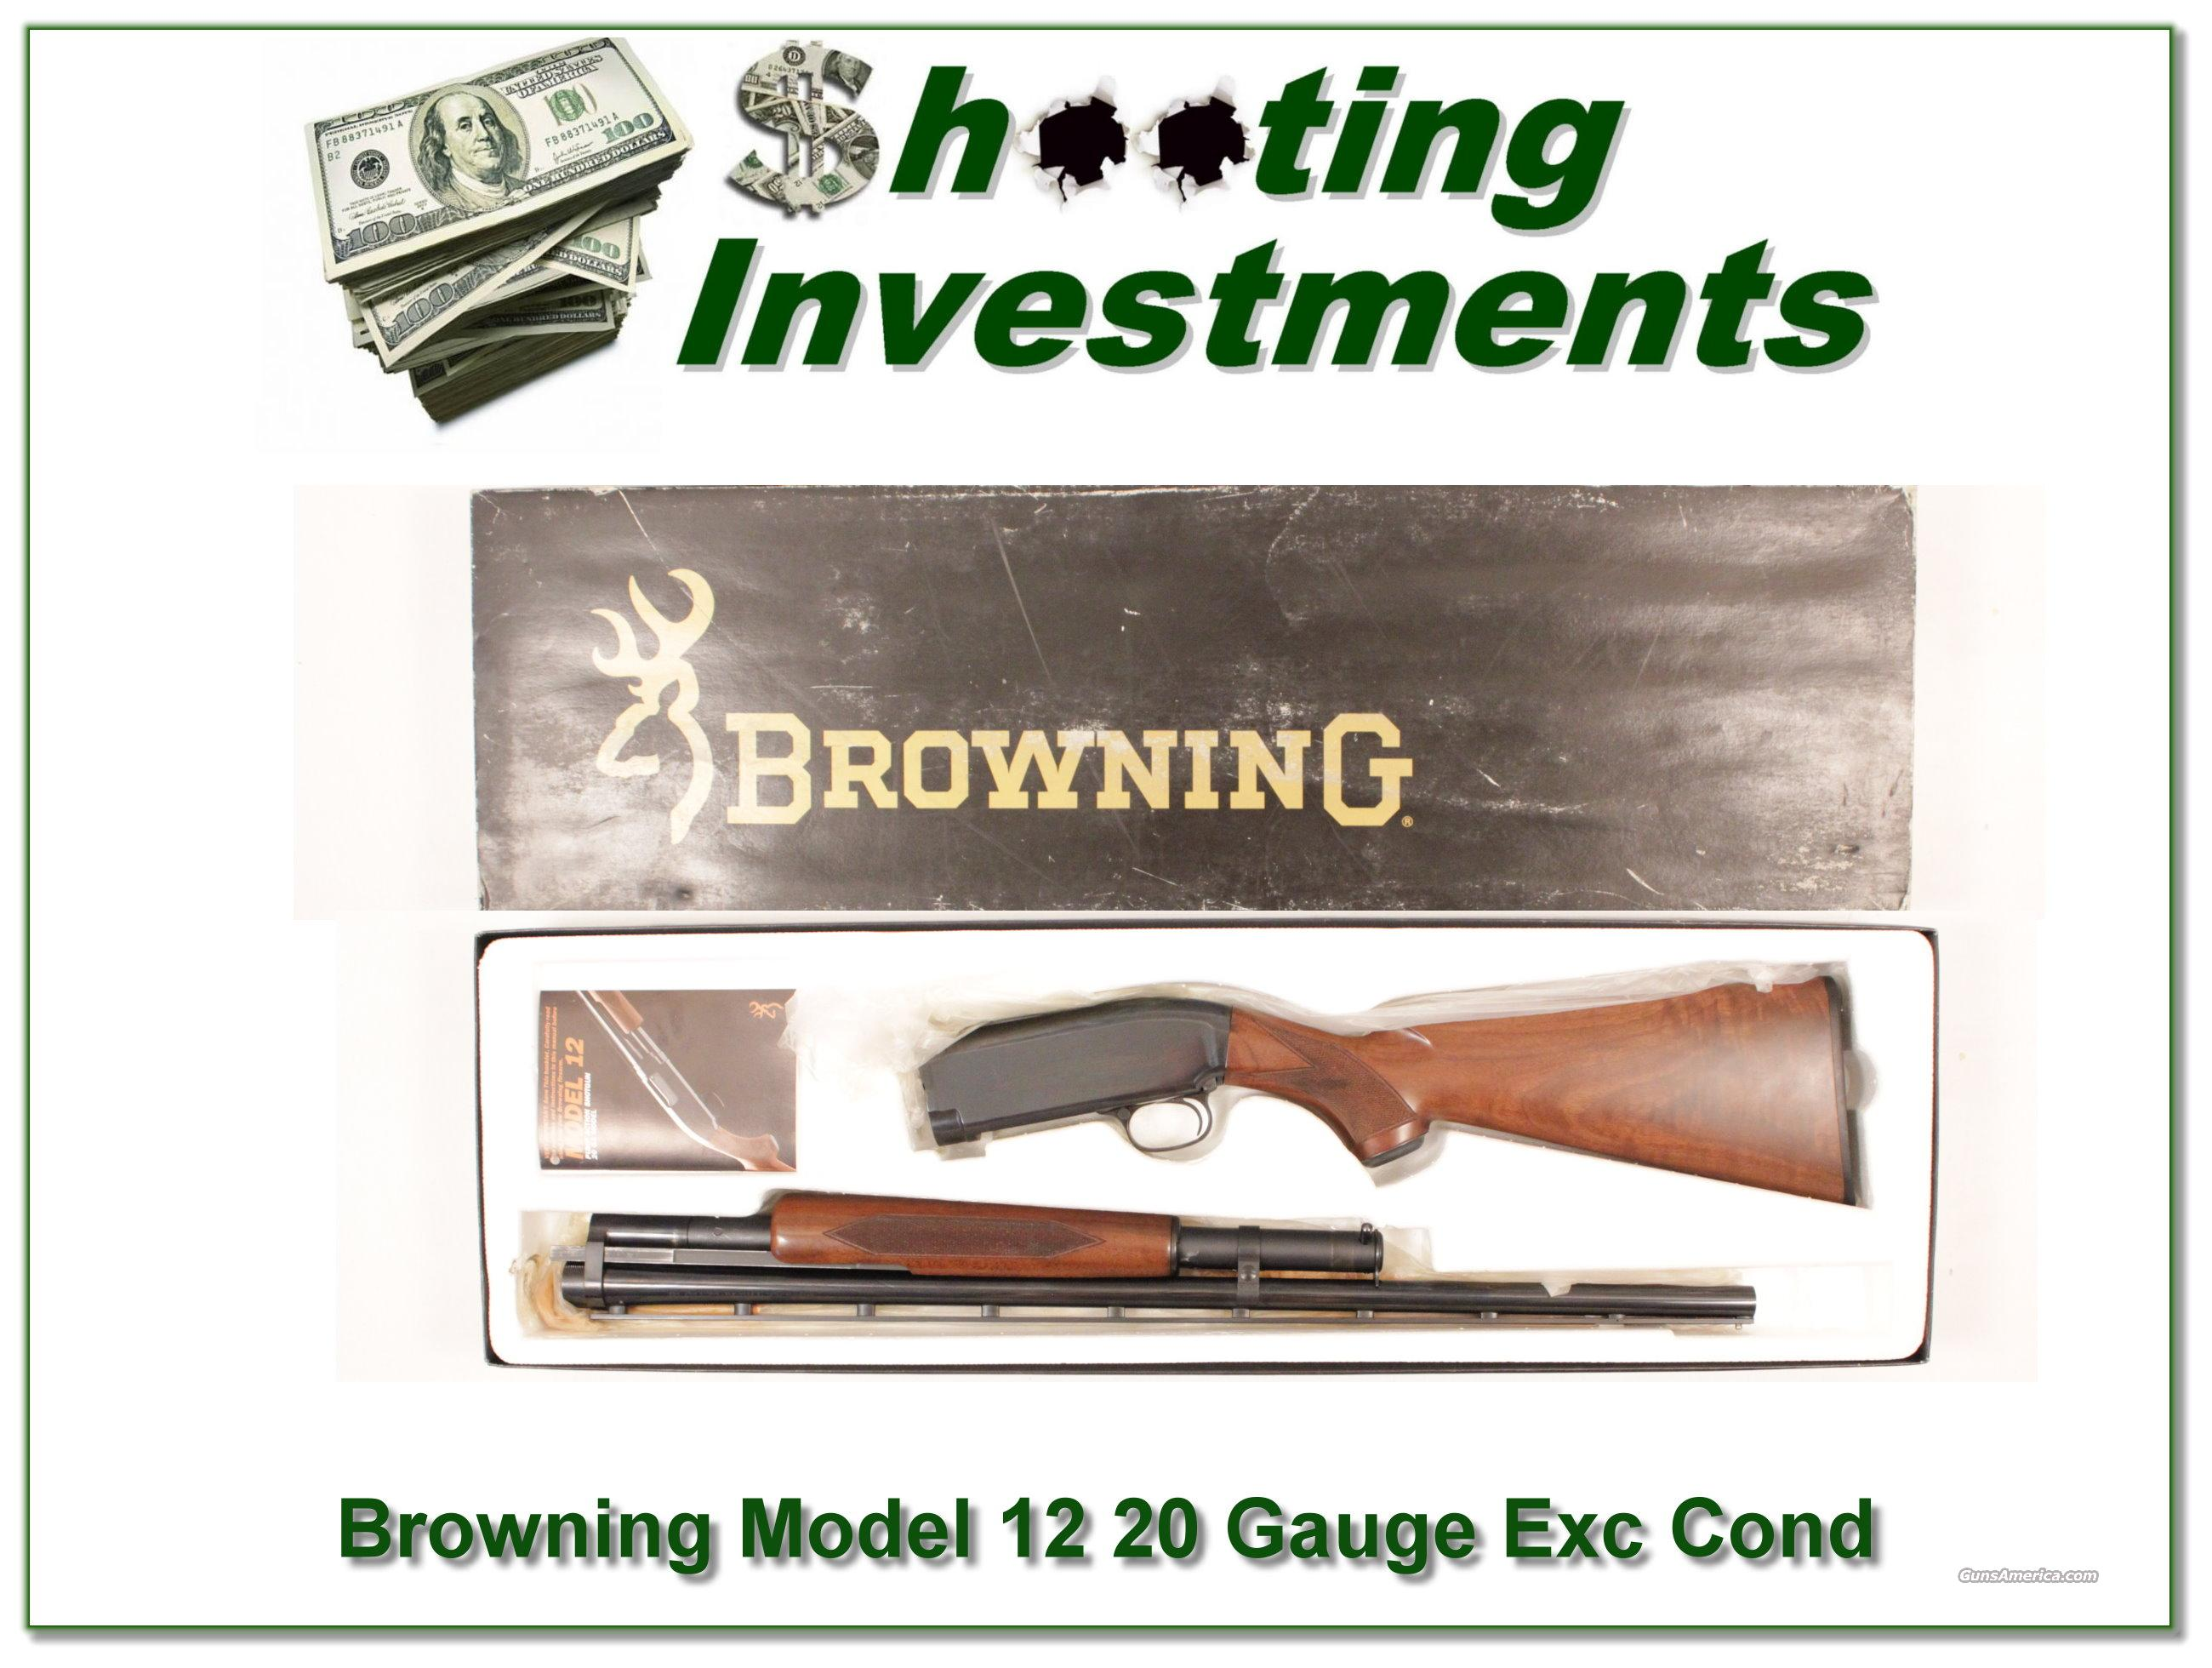 Browning Model 12 20 Gauge Exc Cond in box!  Guns > Shotguns > Browning Shotguns > Pump Action > Hunting